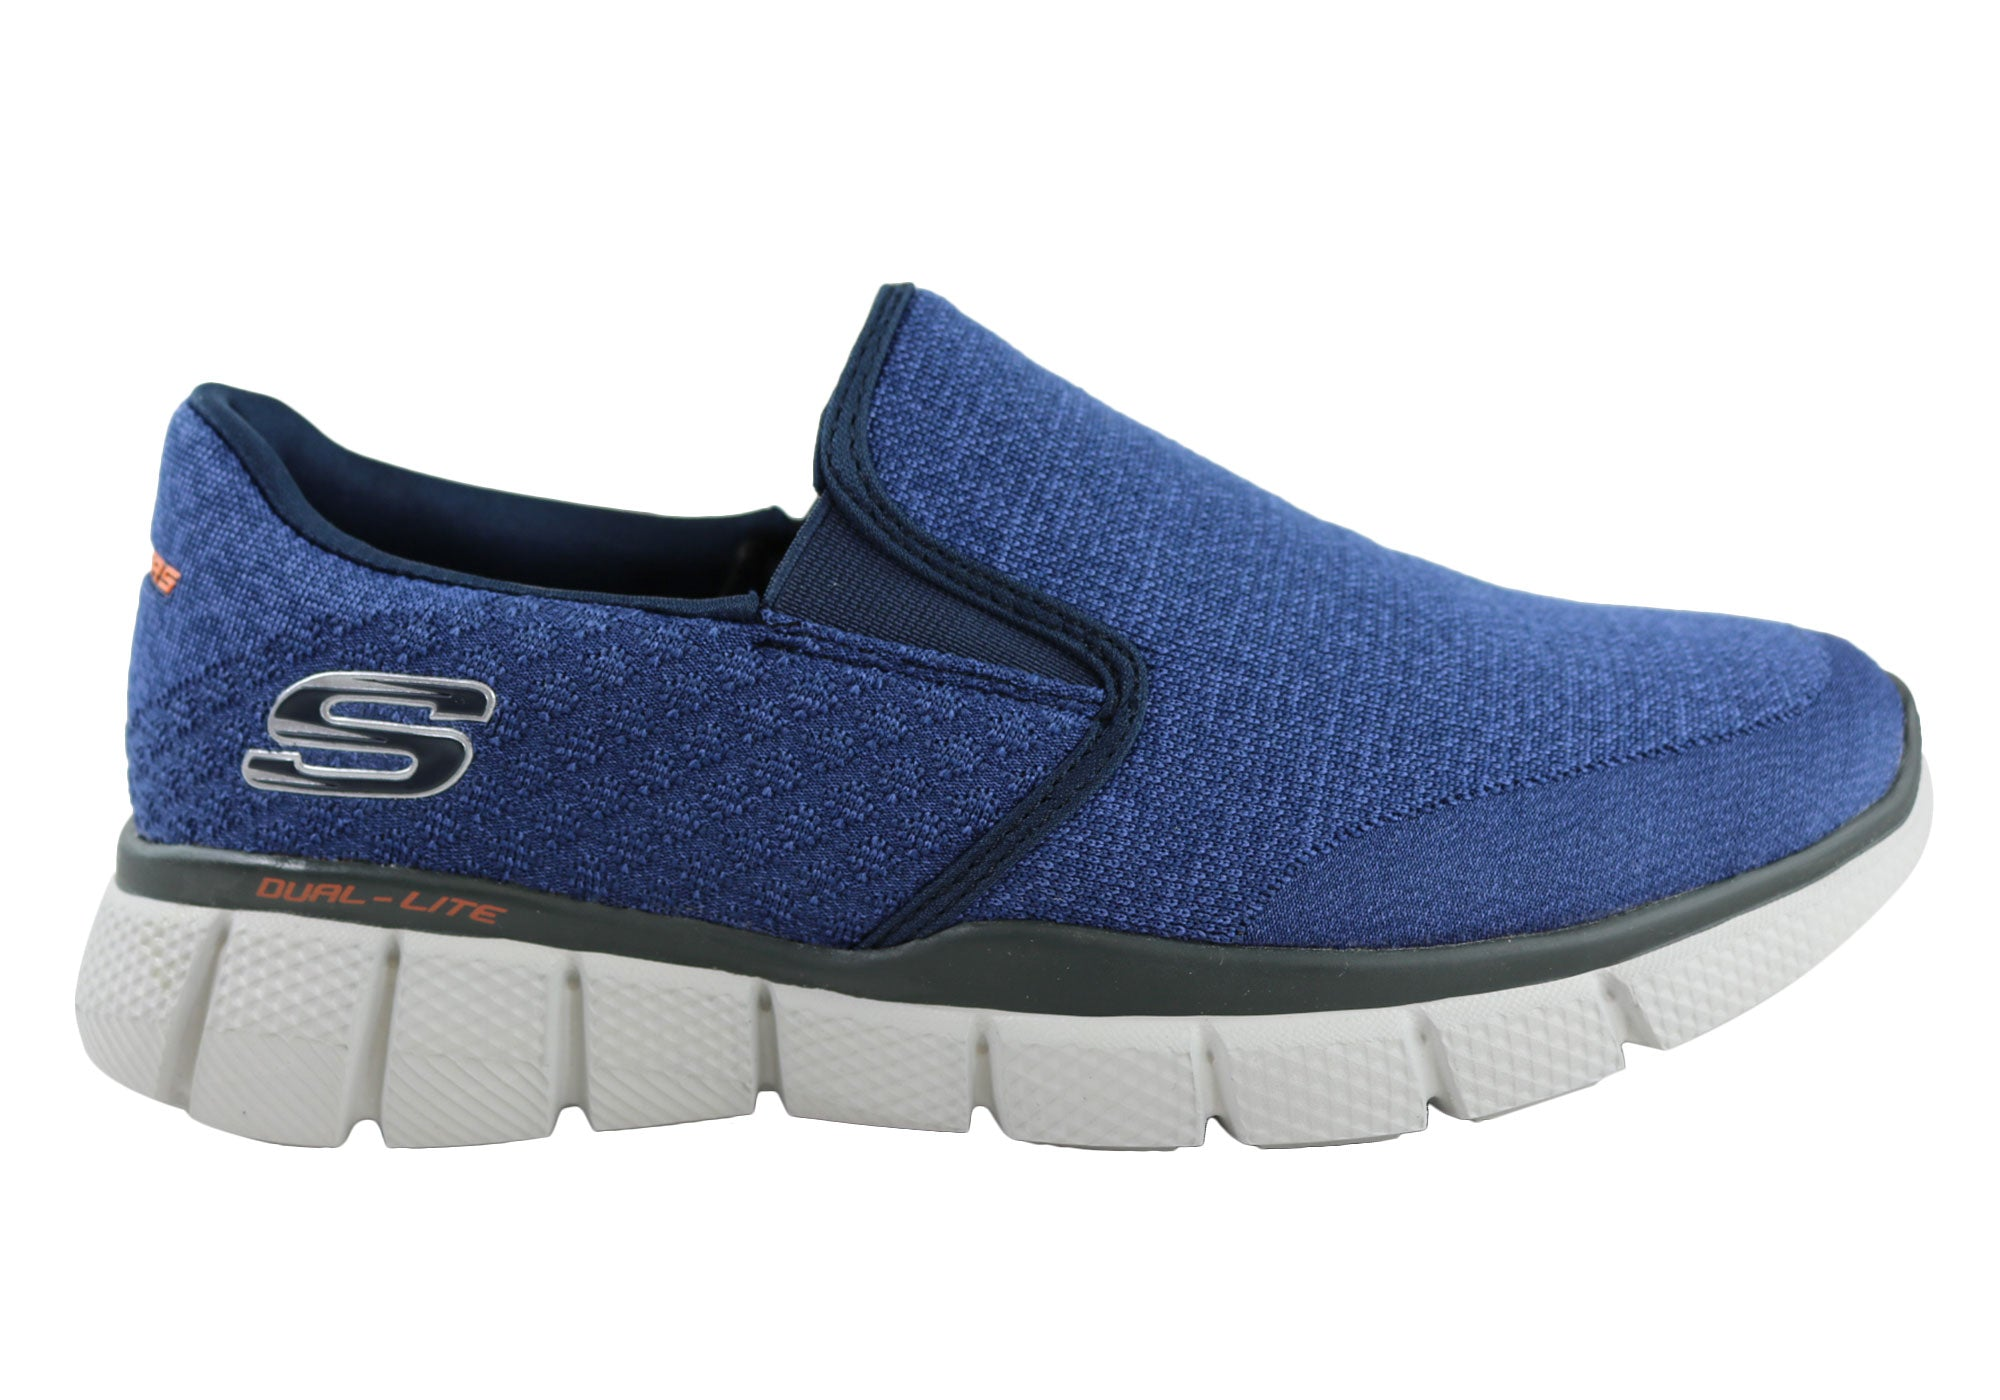 d95a2c271d0ae Skechers Equalizer 2.0 Mens Memory Foam Slip On Shoes | Brand House ...